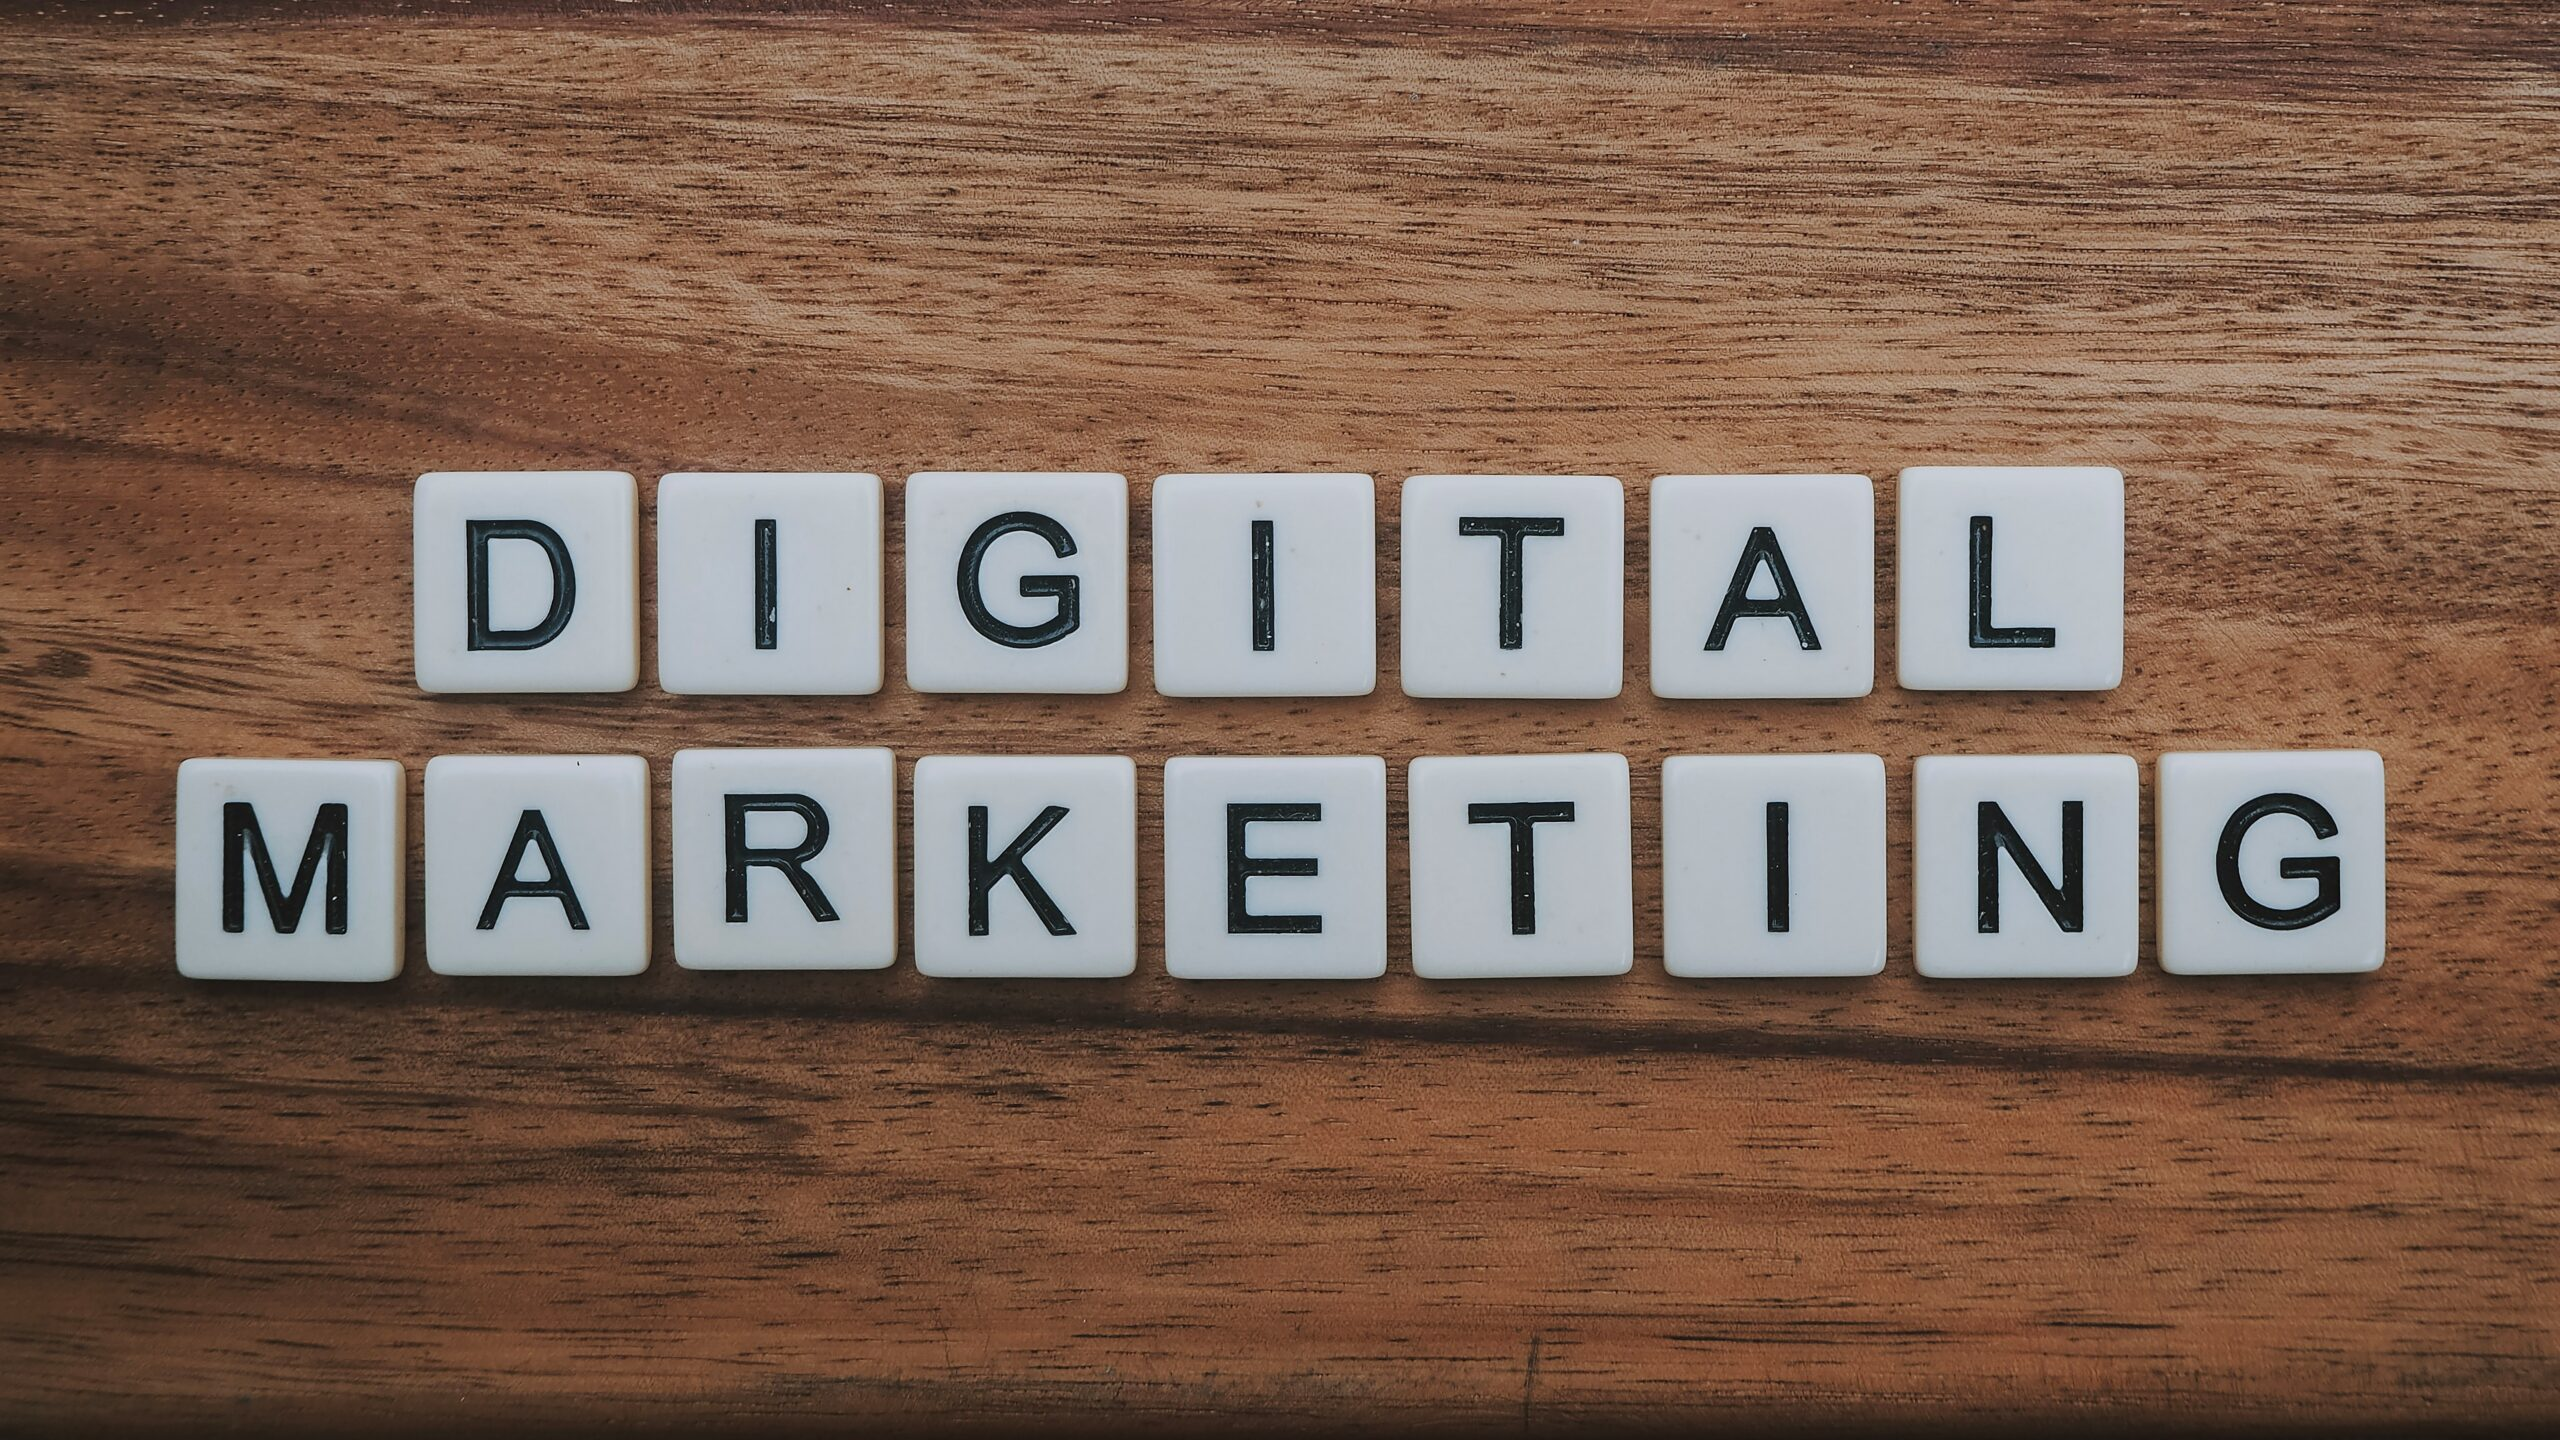 Digital Marketing written out with Scrabble tiles